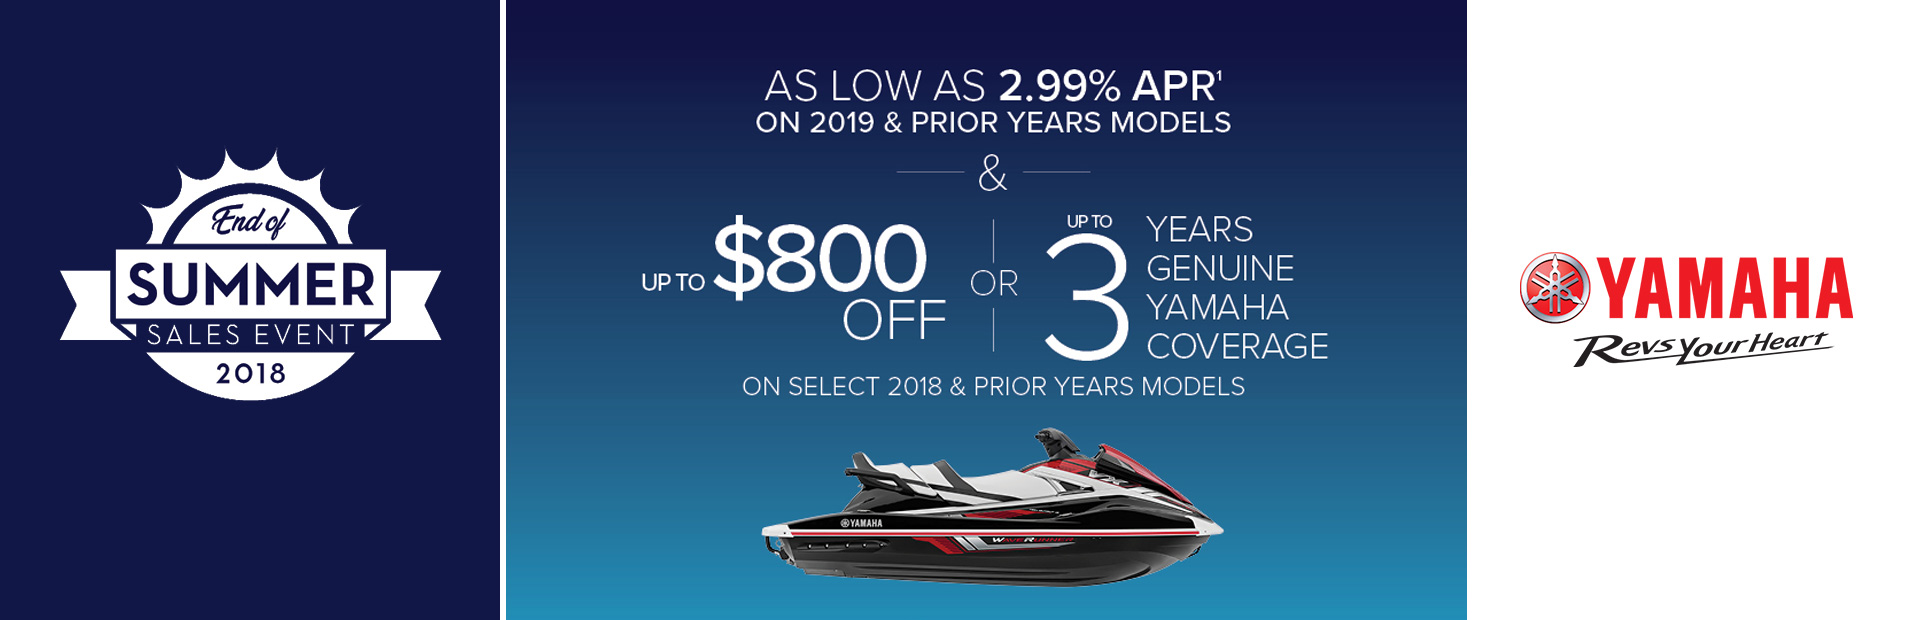 End of Season Sales Event - As Low As 2.99% APR